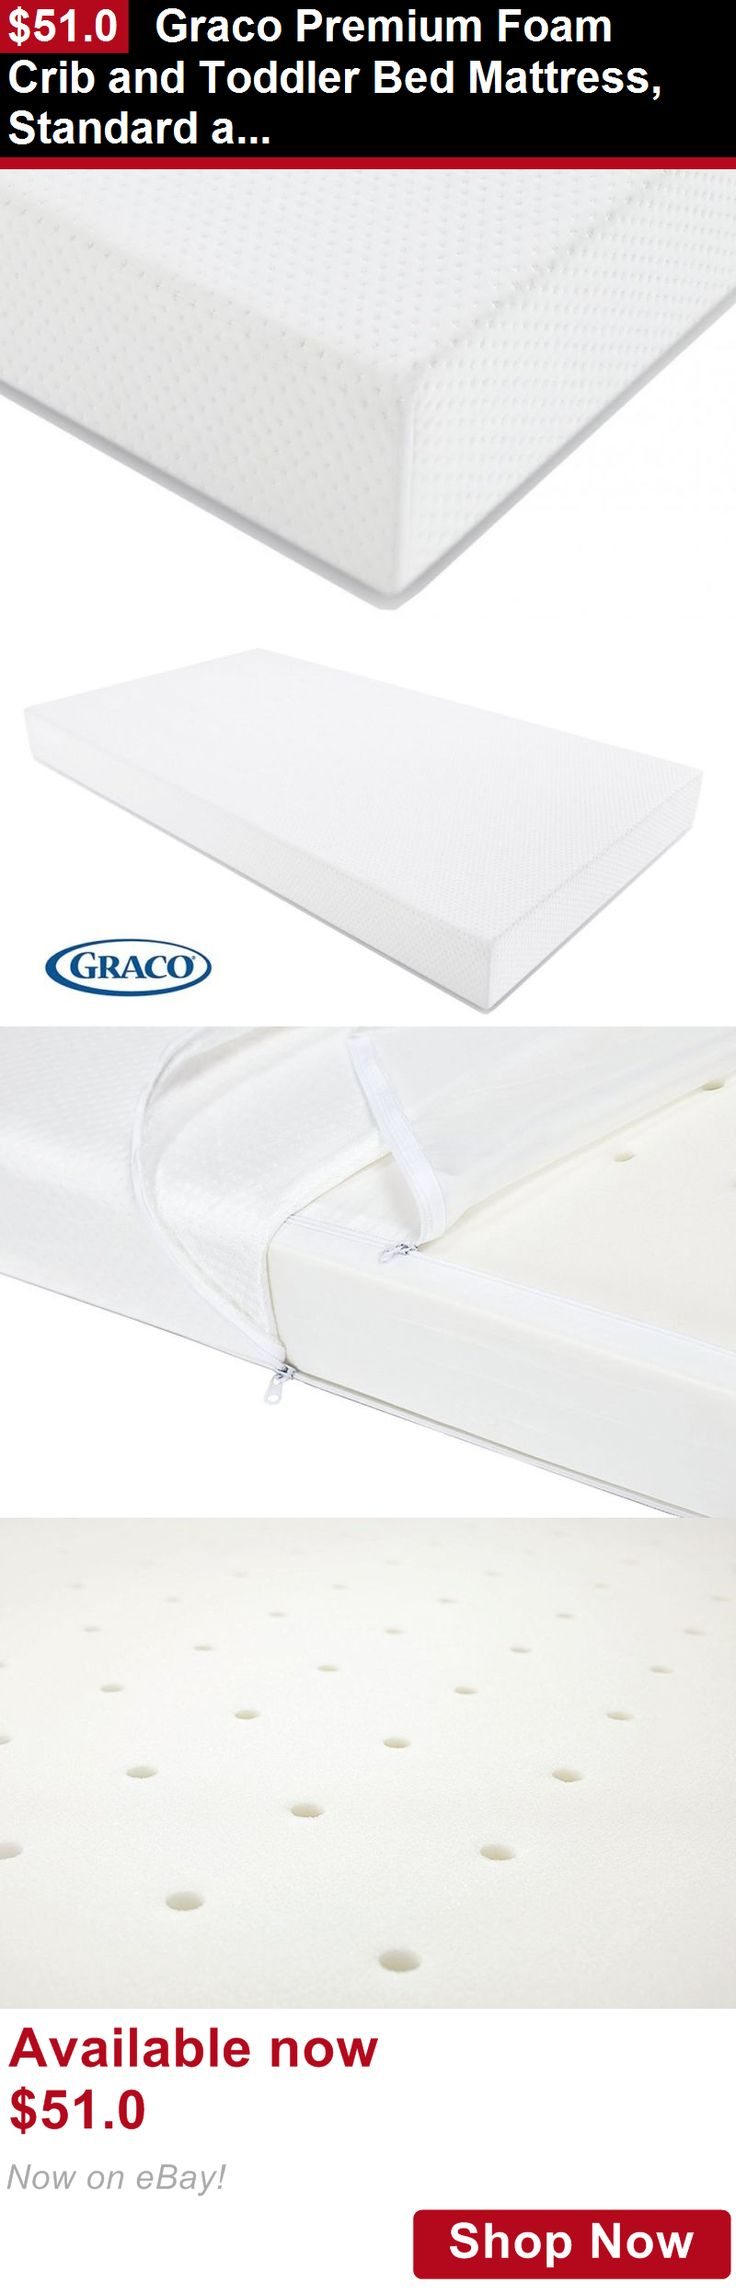 Crib Mattresses: Graco Premium Foam Crib And Toddler Bed Mattress, Standard And Full Sized BUY IT NOW ONLY: $51.0